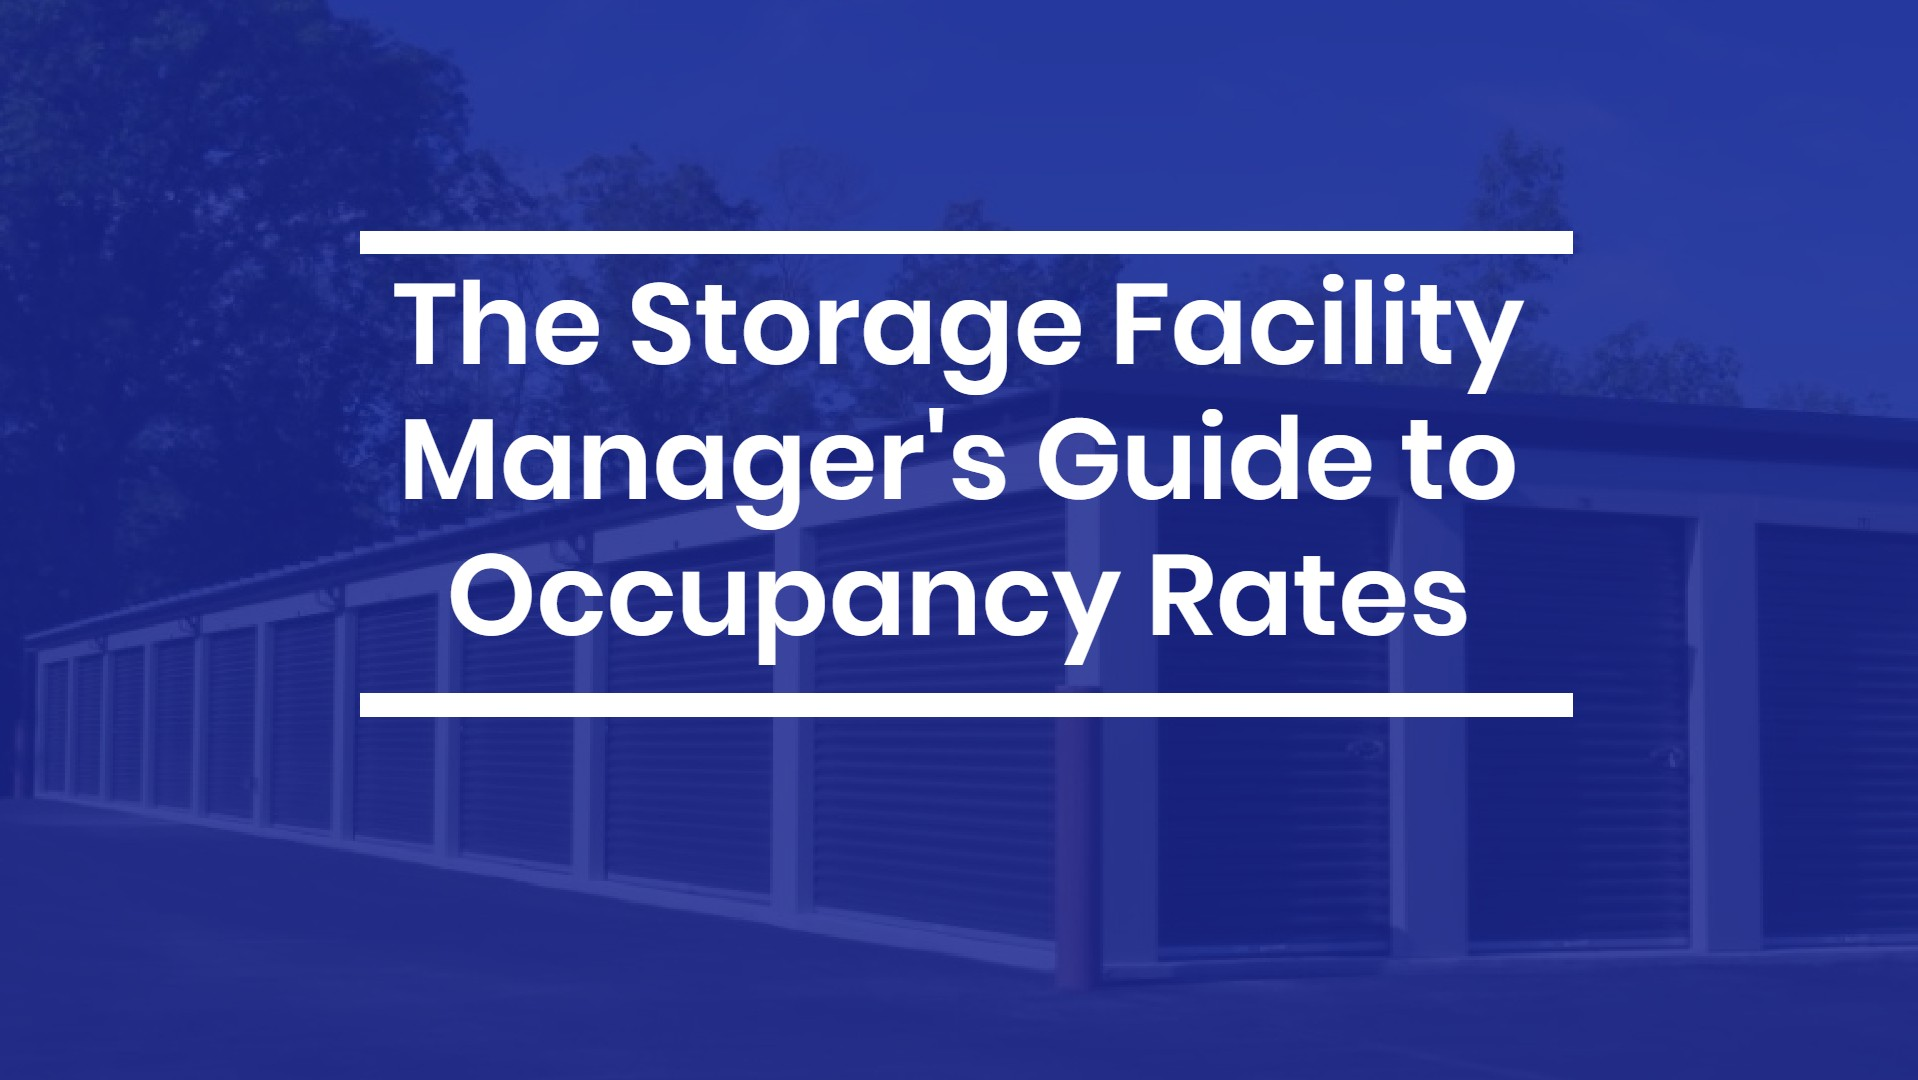 The Storage Facility Manager's Guide to Occupancy Rates